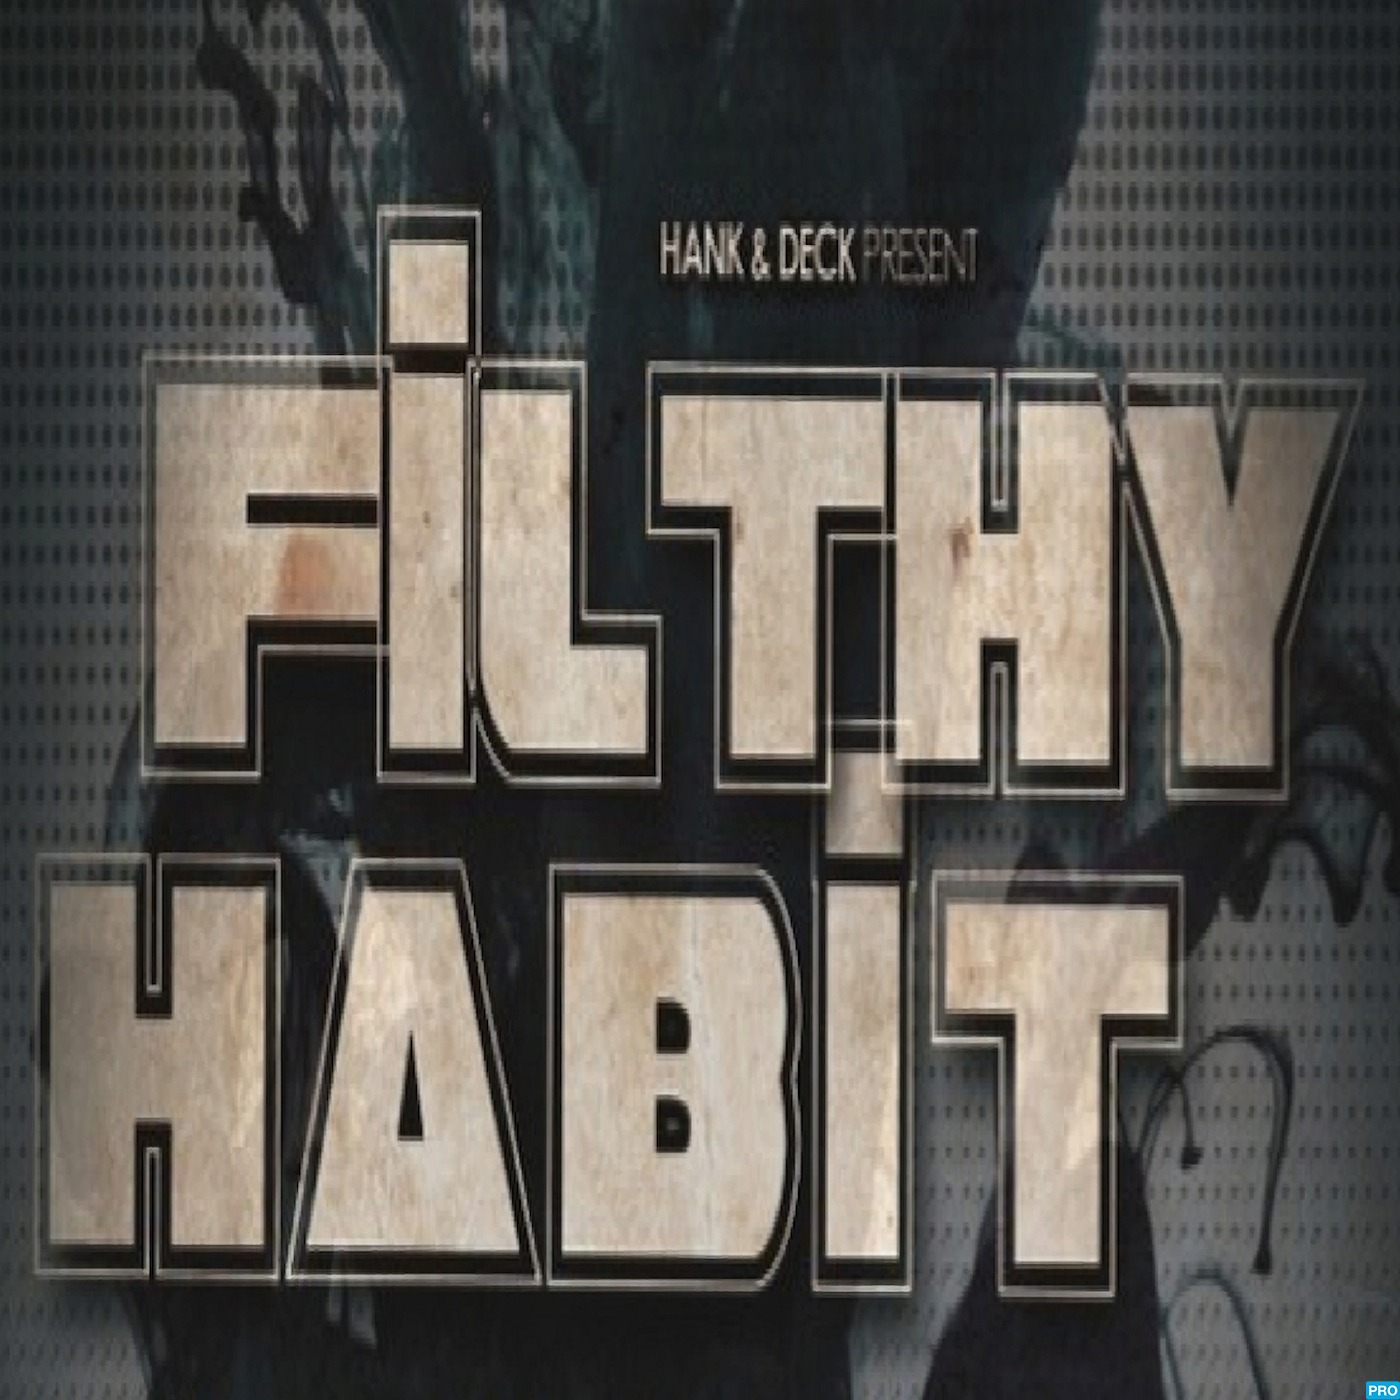 Hank & Deck Present Filthy Habit